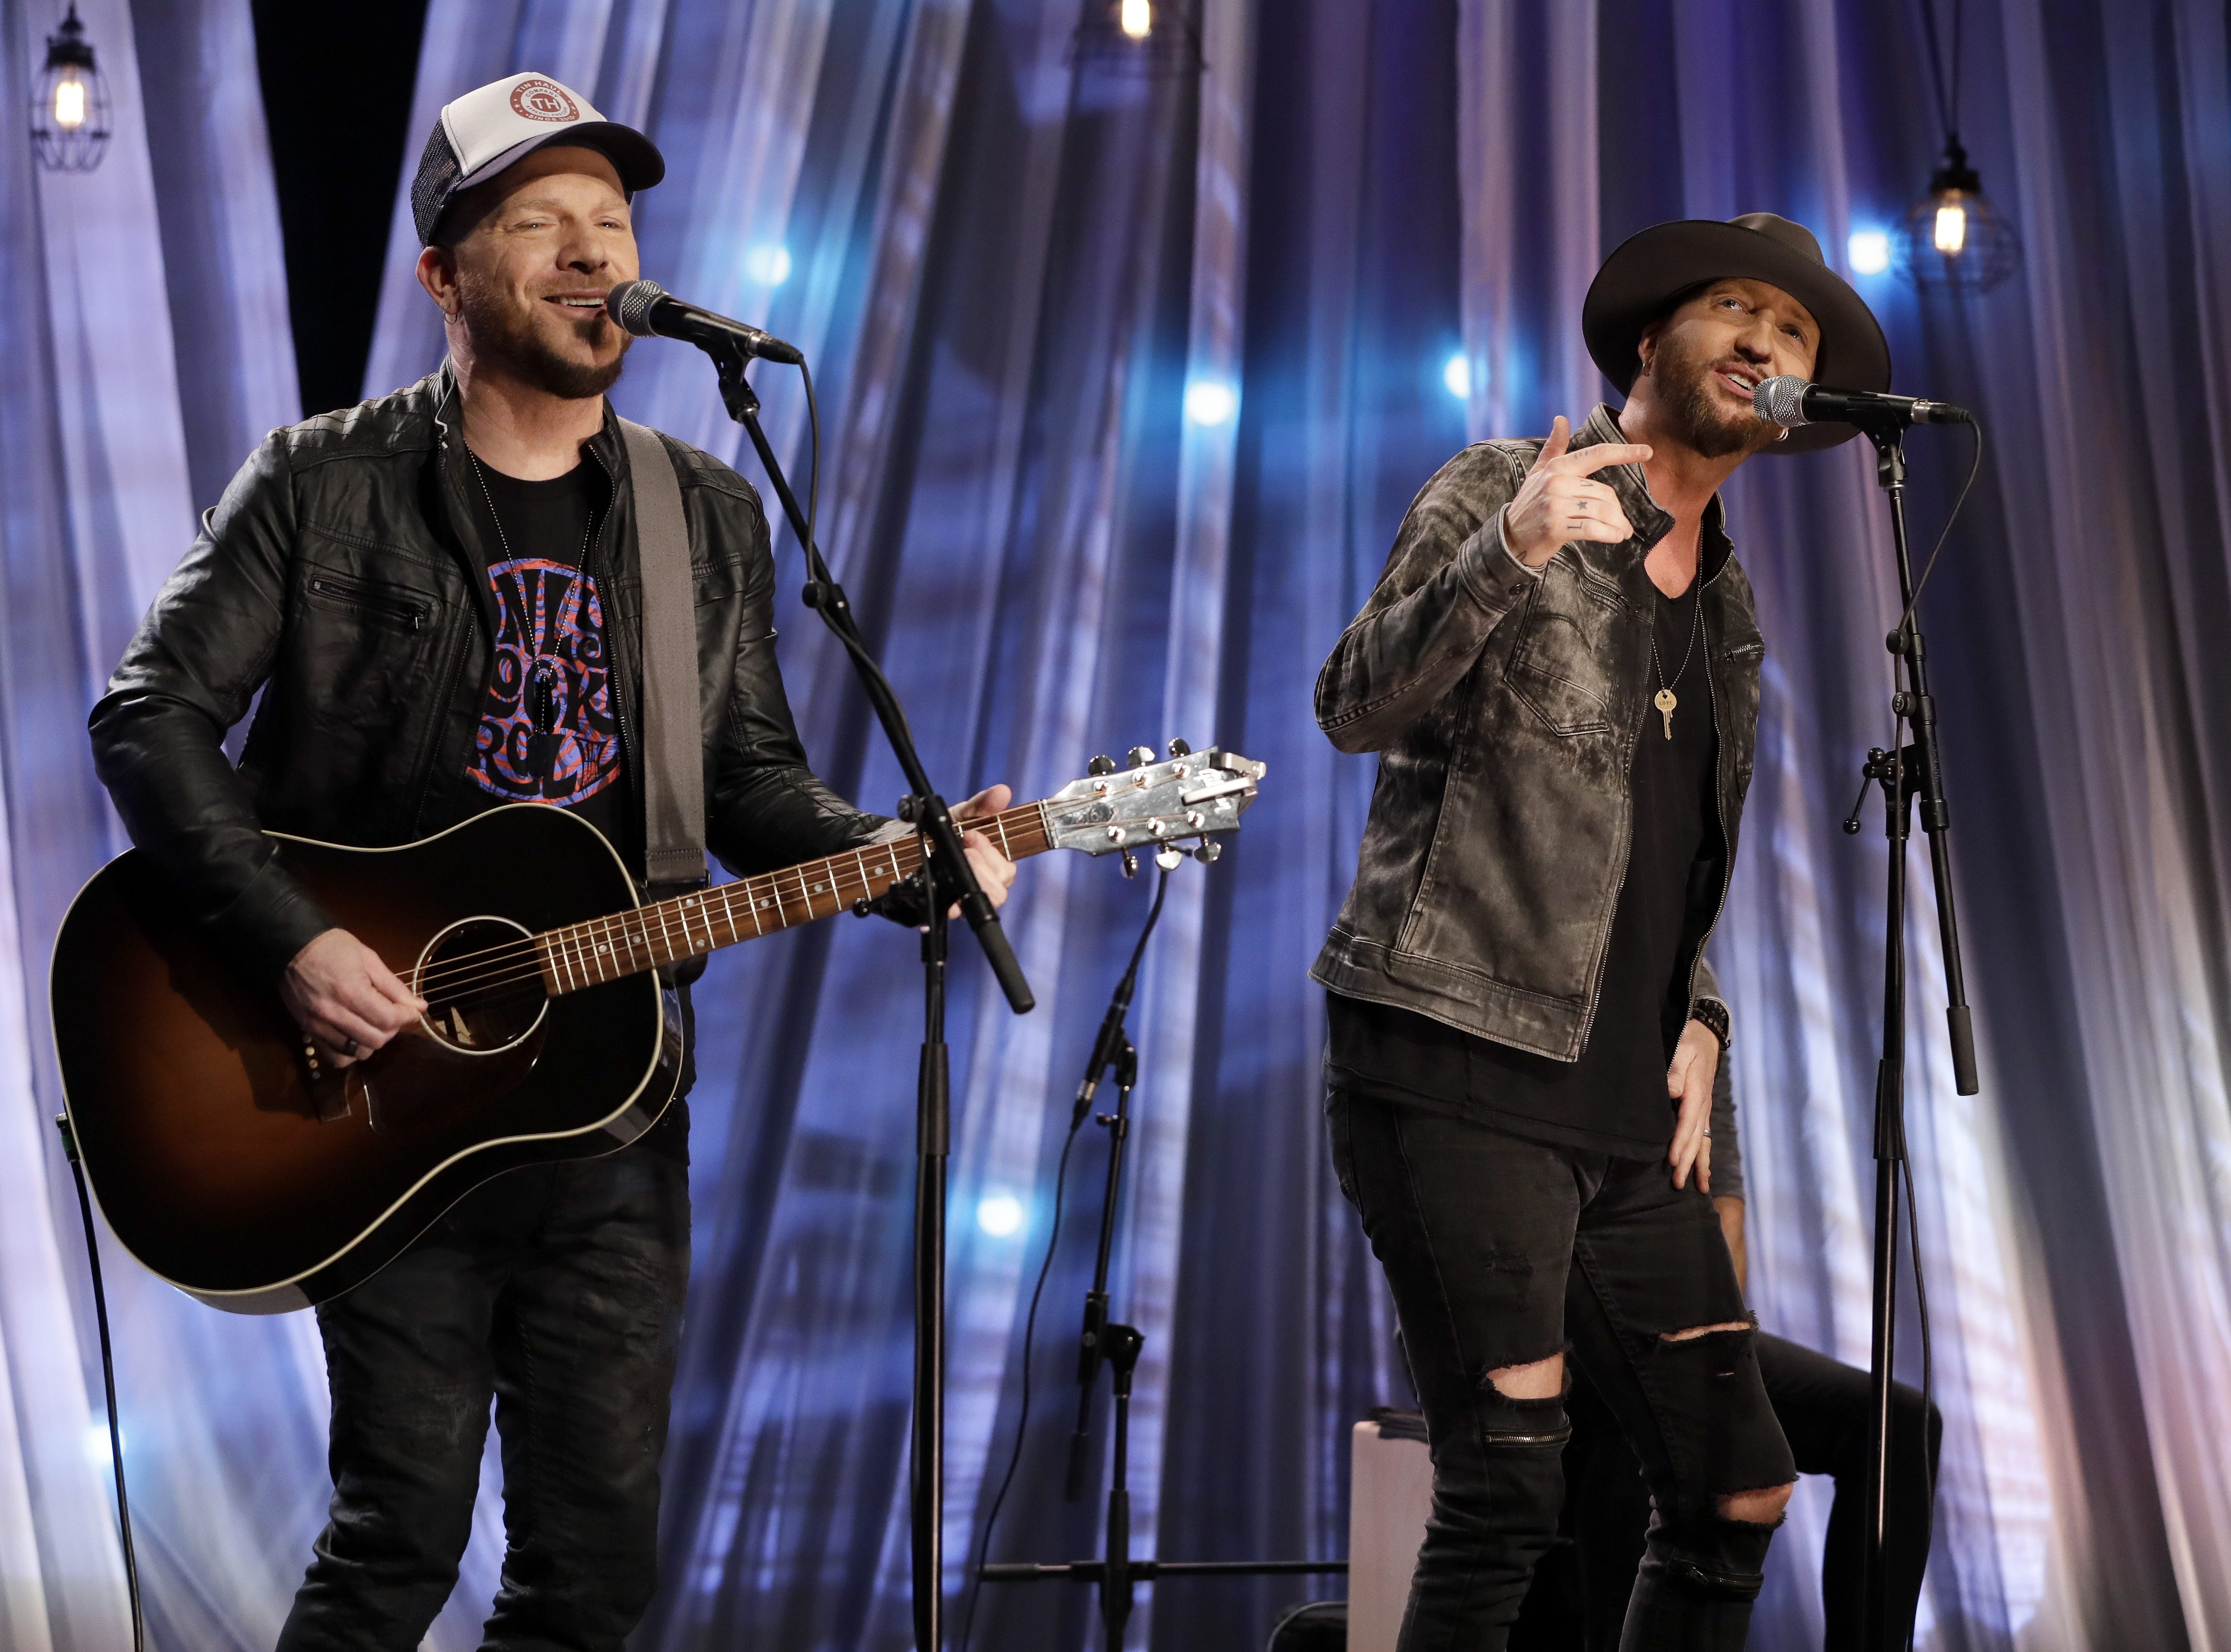 LOCASH is scheduled to play the Chevy Riverfront Stage at CMA Fest 2019.